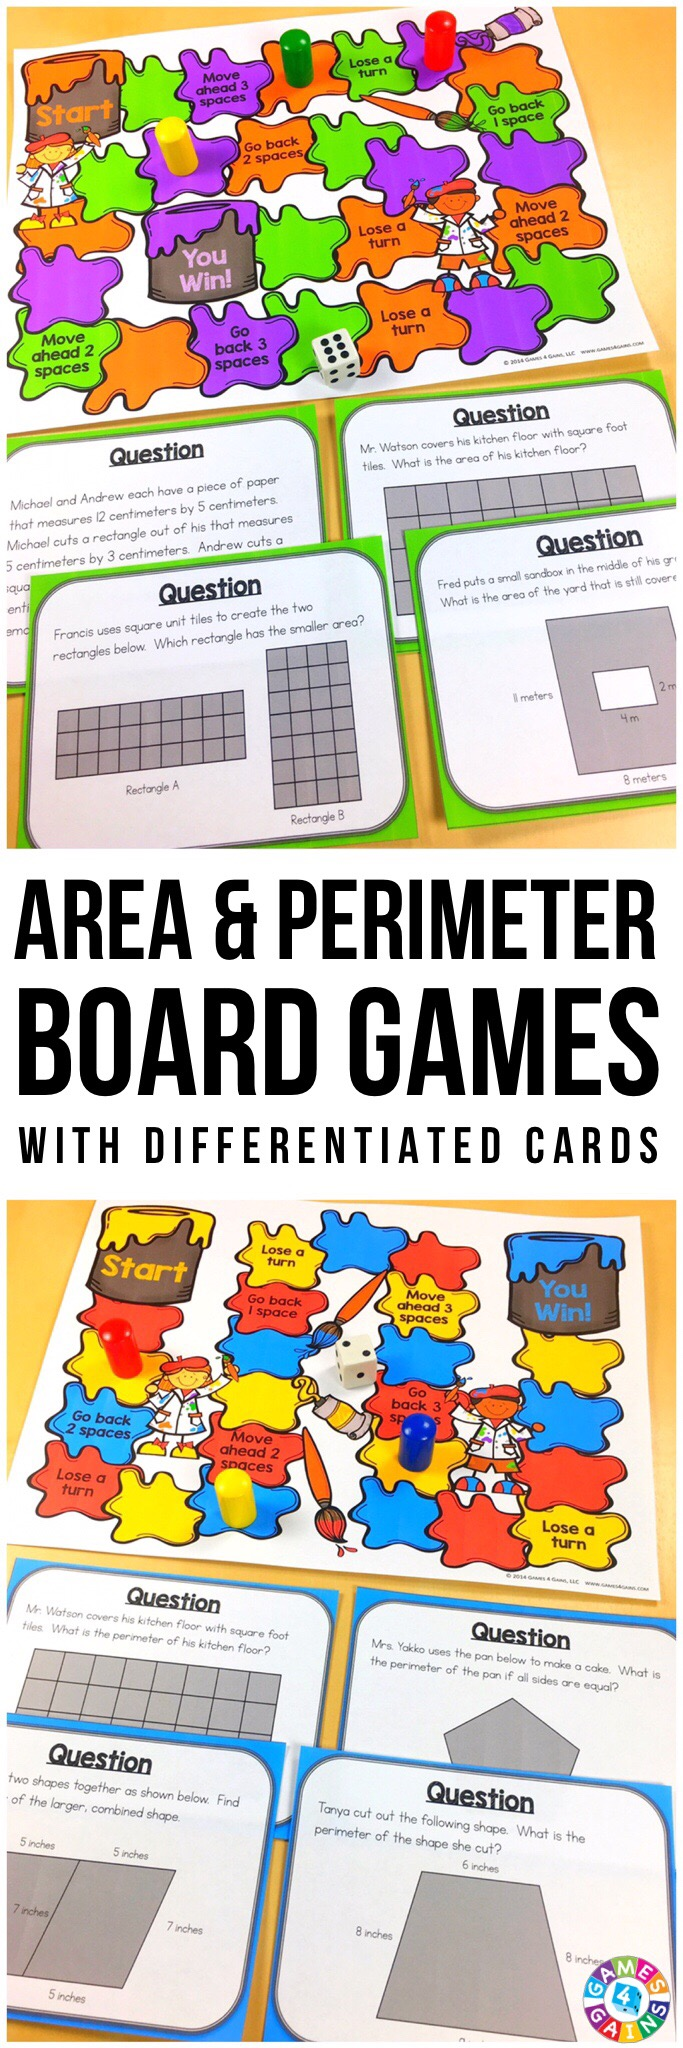 """""""LOVE the differentiated levels and approaches provided in these area and perimeter problems!"""" This Area & Perimeter Games Bundle includes 2 different board games for practice with finding the area of rectangles and the perimeter of polygons. Each game includes 36 word problem game cards and a game board. These games support 3rd grade Common Core standards 3.MD.5, 3.MD.6, 3.MD.7, and 3.MD.8 as well as 4th grade Common Core standard 4.MD.3."""